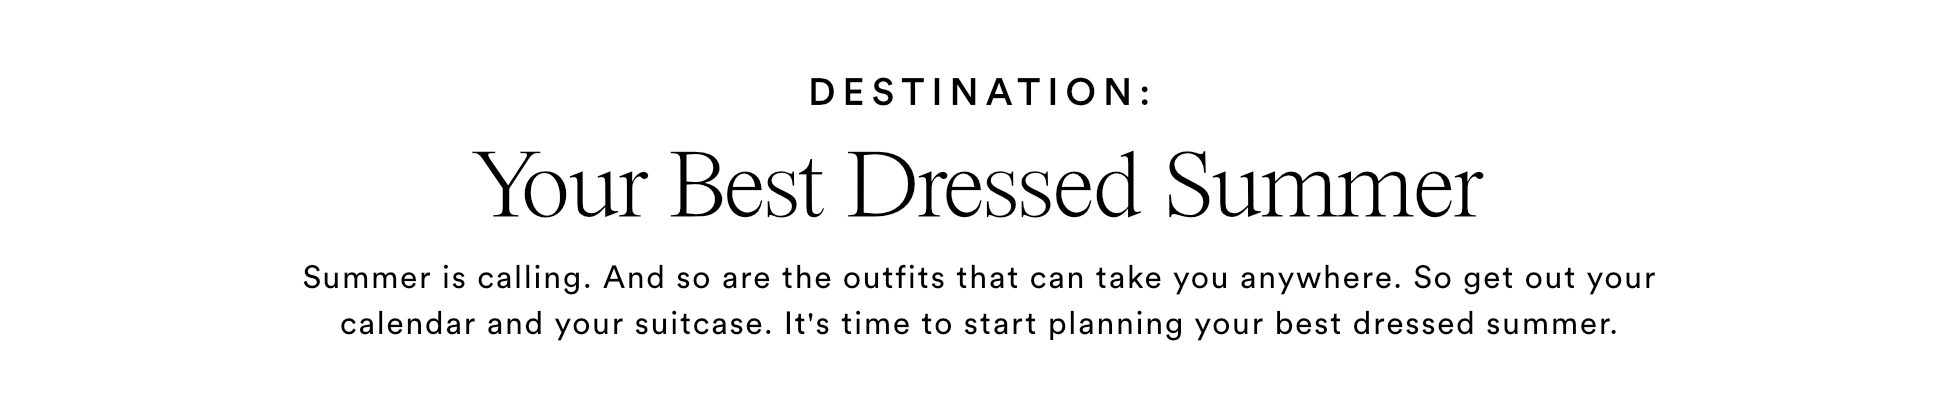 DESTINATION: Your Best Dressed Summer